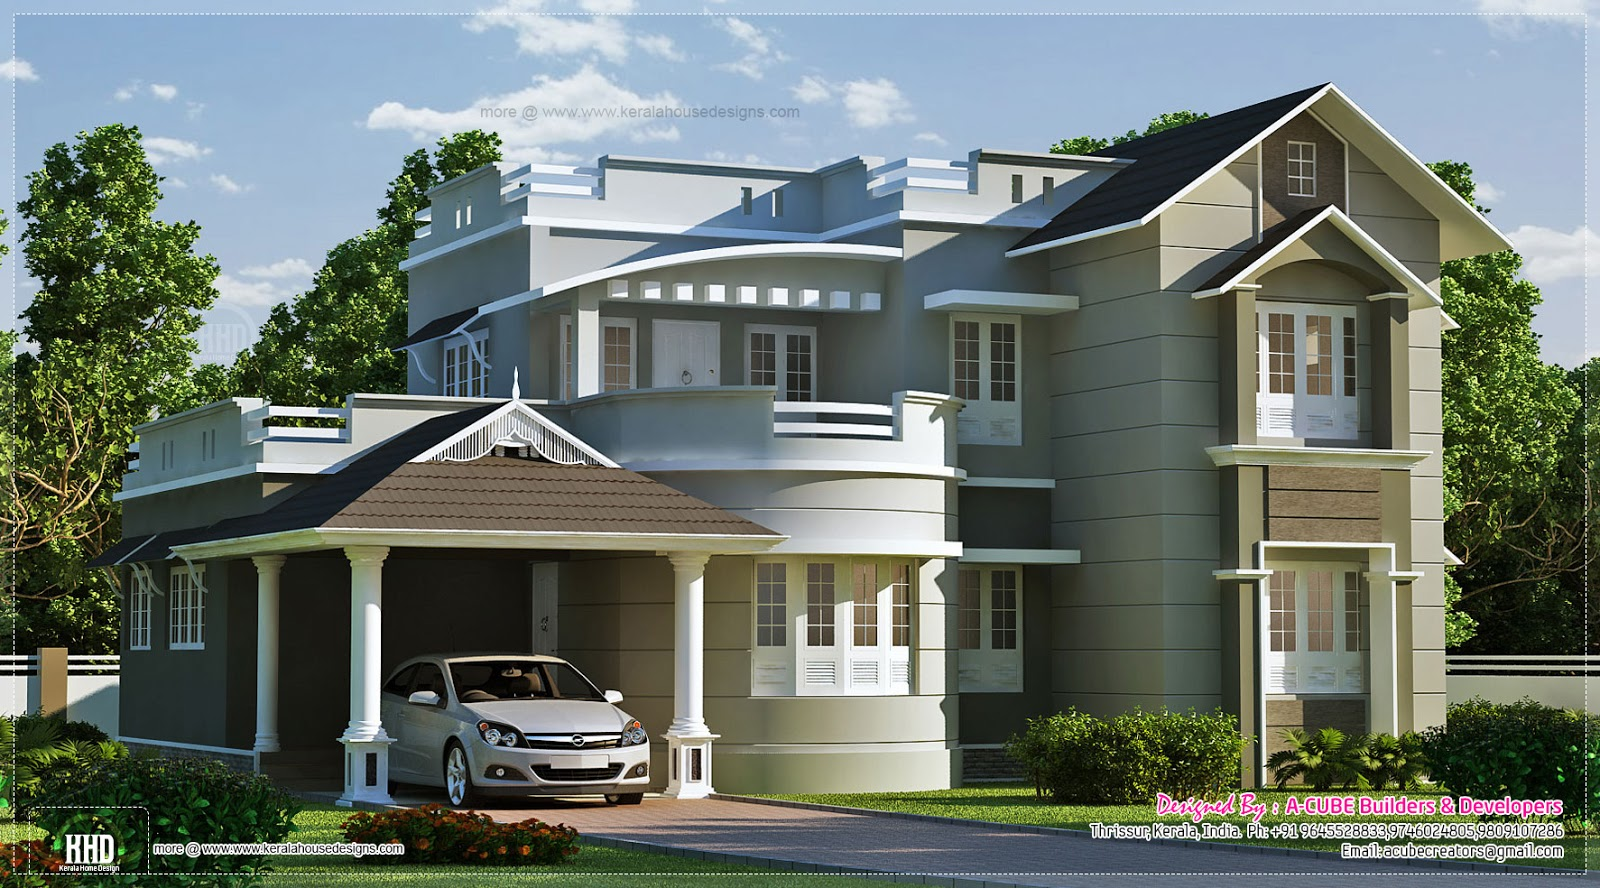 New home designs 18381 hd wallpapers background for New home designs pictures